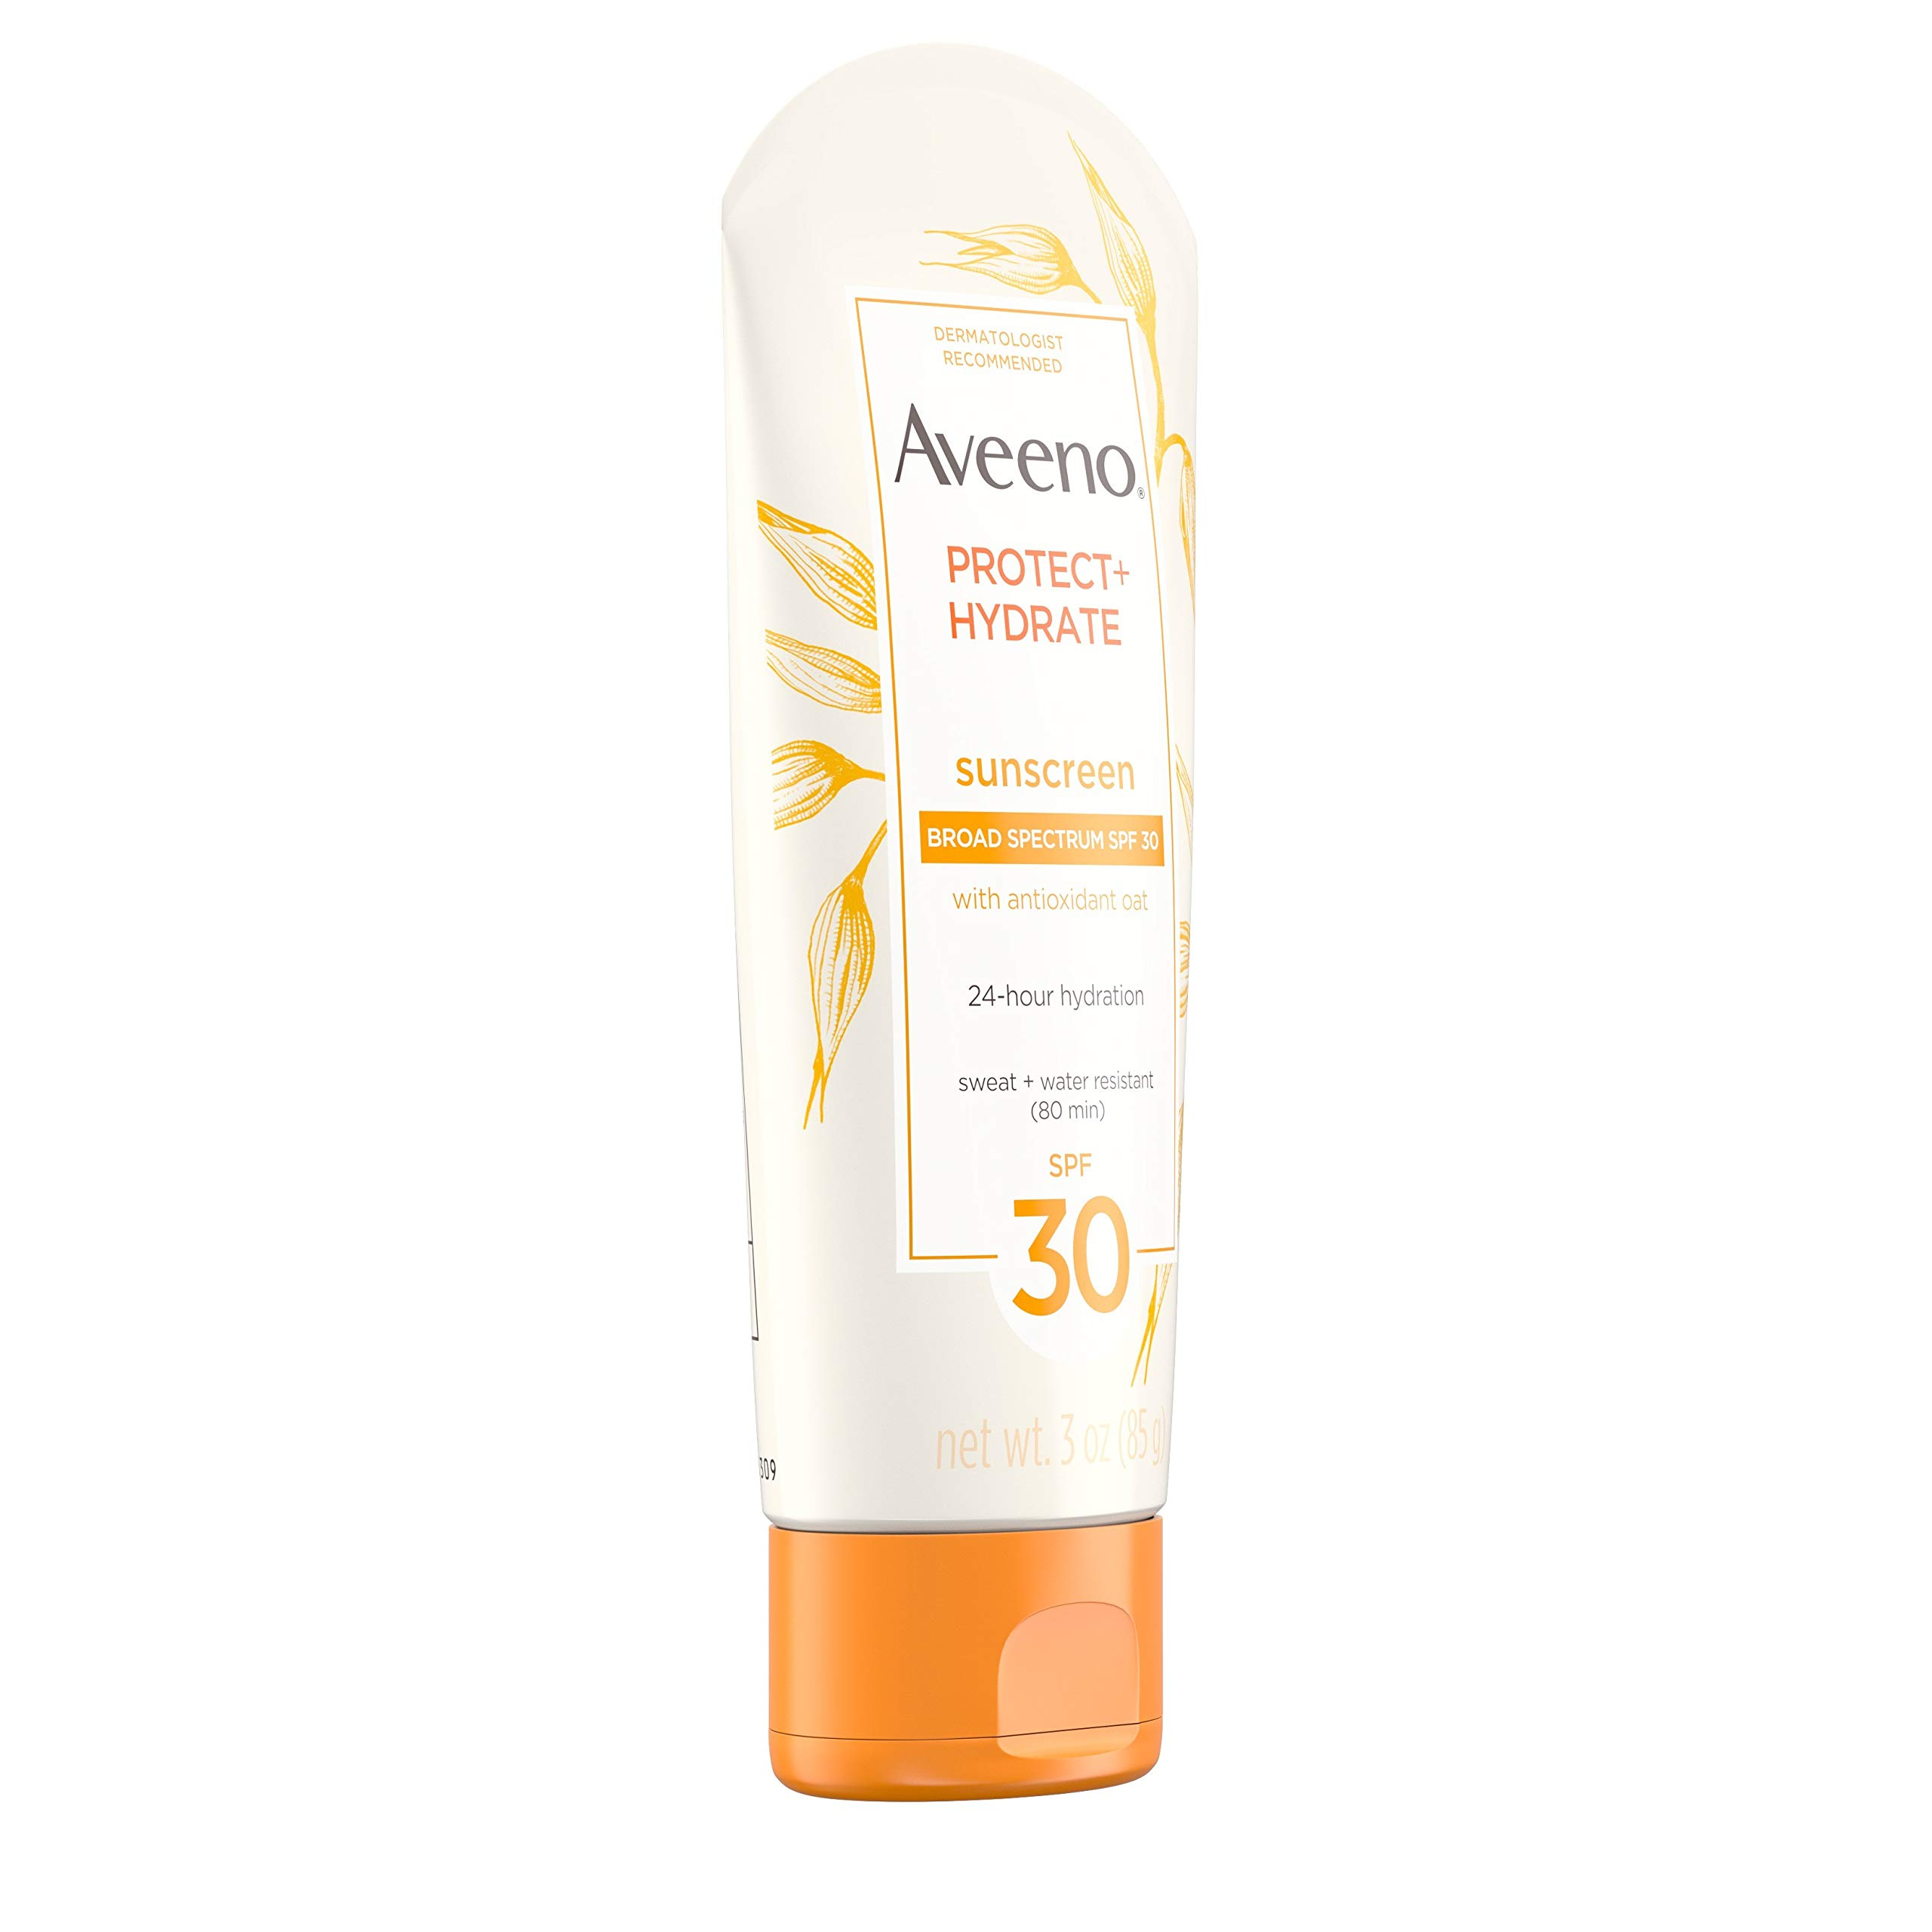 Aveeno Sun Protection + Hydrate Moisturizing Sunscreen Lotion with Broad Spectrum SPF 30 & Antioxidant Oat, Oil-Free, Sweat- & Water-Resistant, Travel-Size, 3 Oz